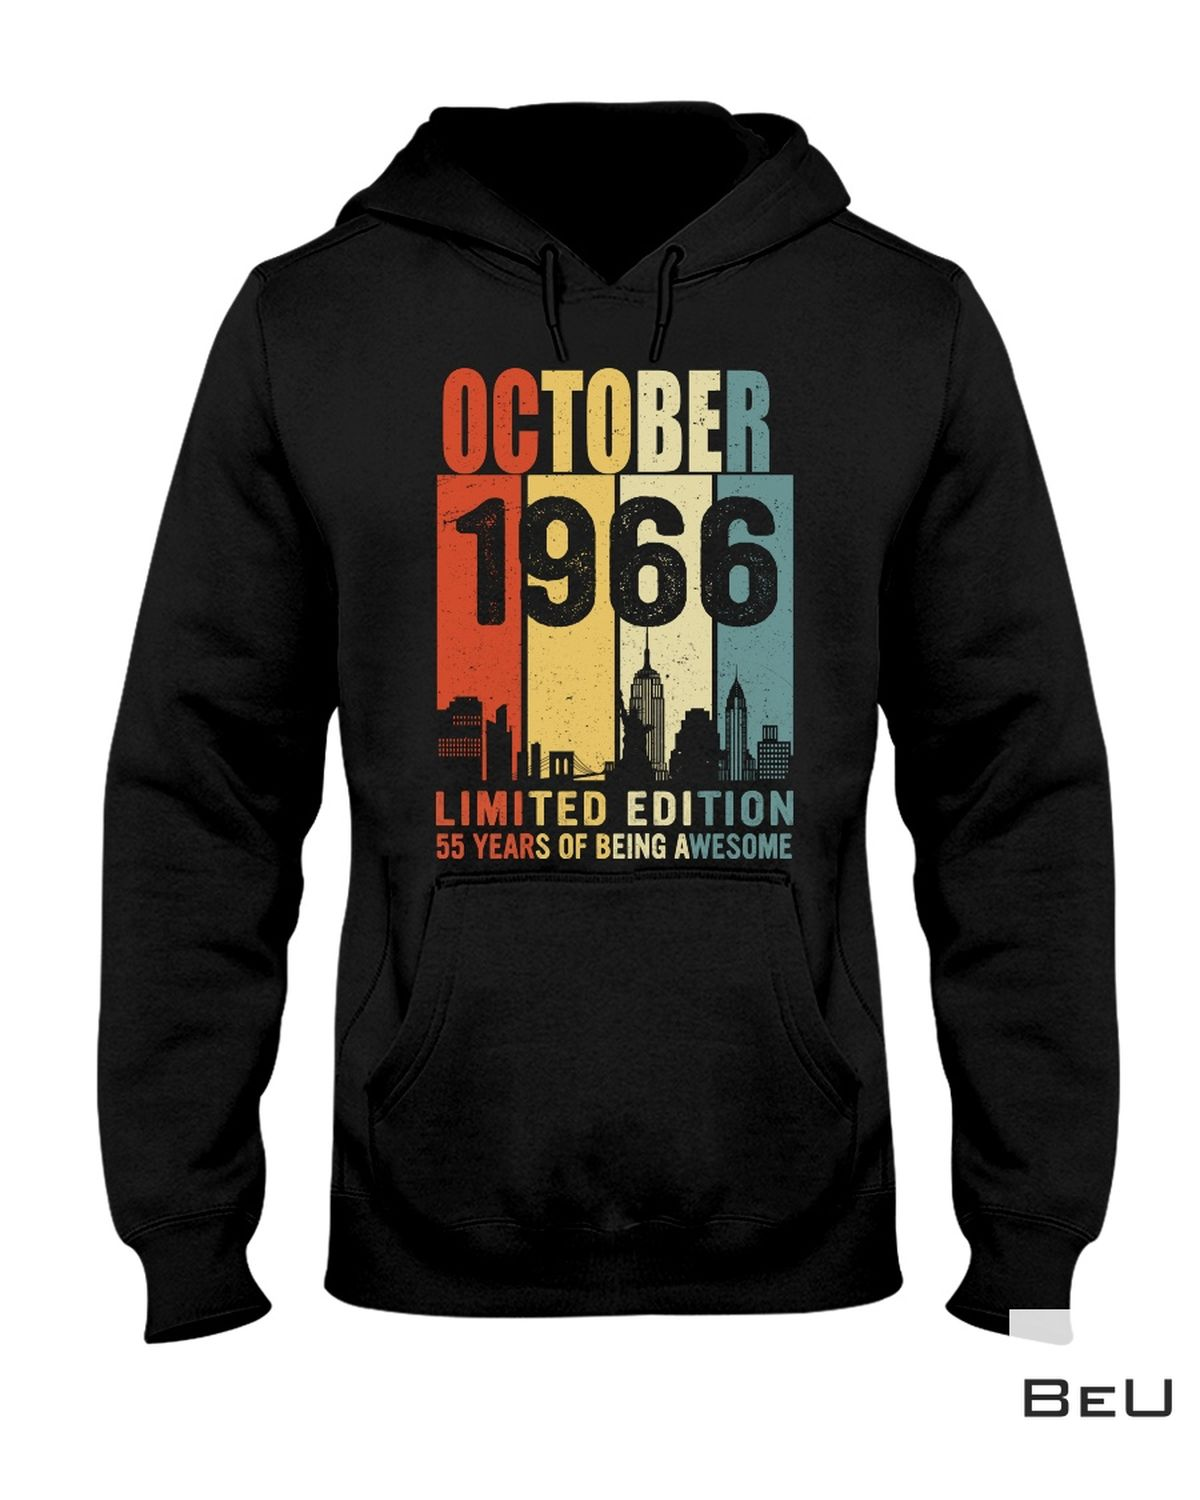 Vibrant October 1966 Limited Edition Shirt